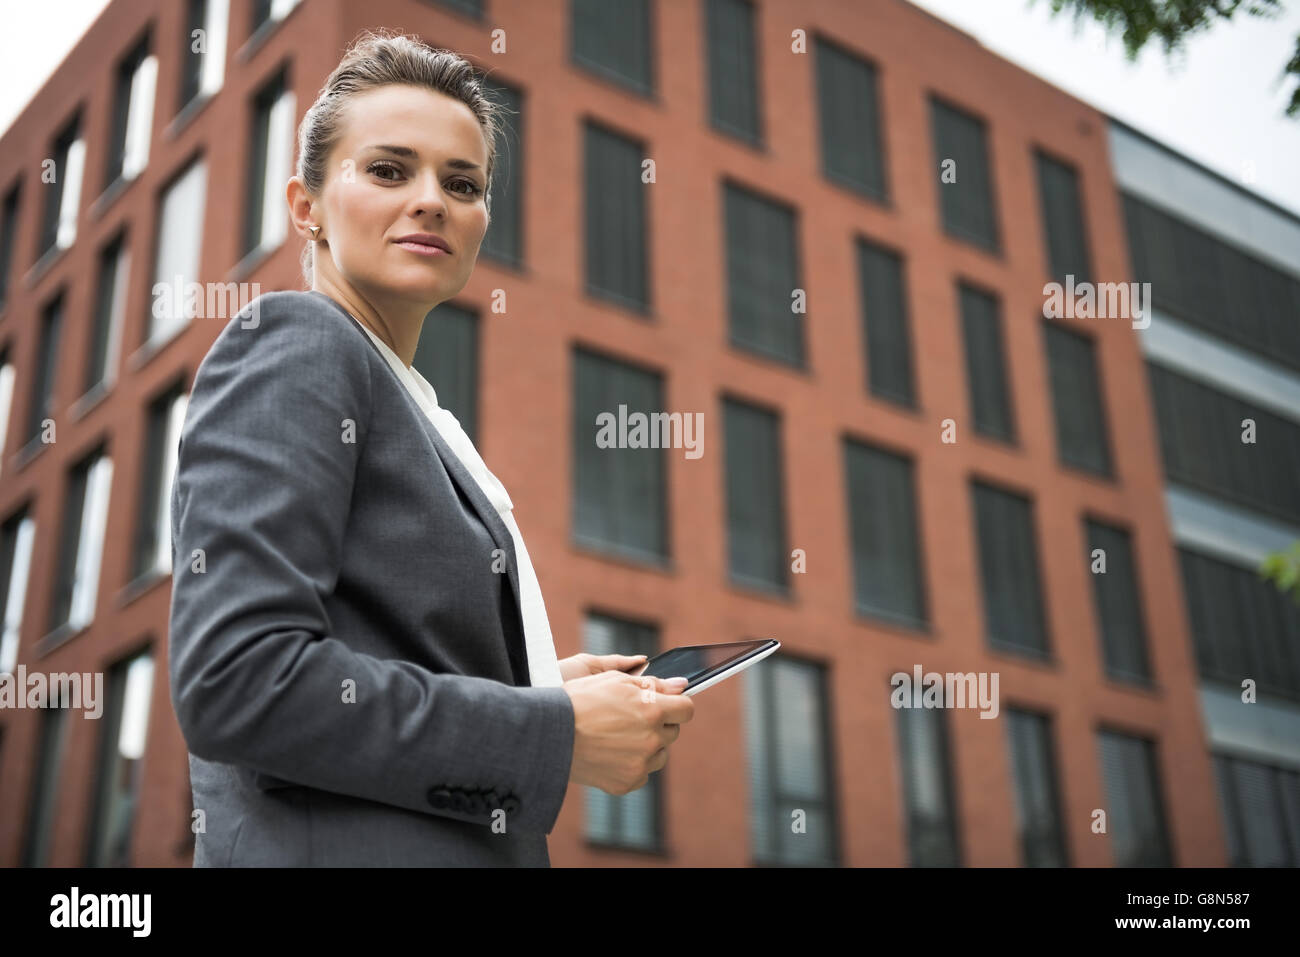 The new business. Portrait of modern business woman with tablet PC against office building - Stock Image